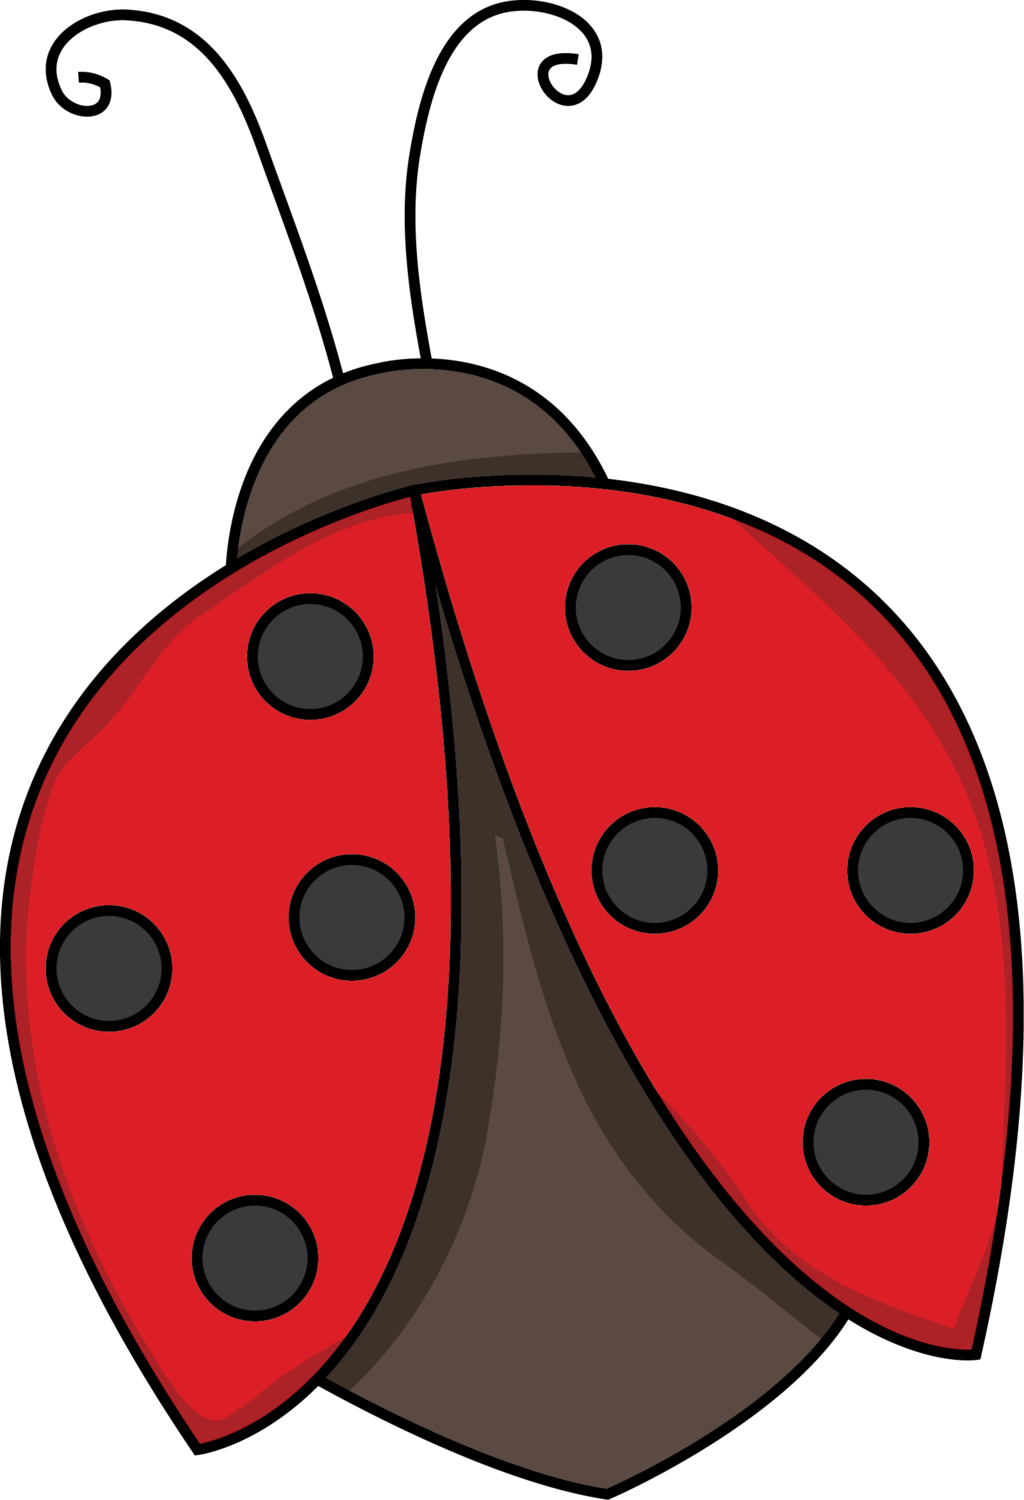 Clipart - Ladybug - Clipart Library - Cl-Clipart - Ladybug - Clipart library - Clipart library-2